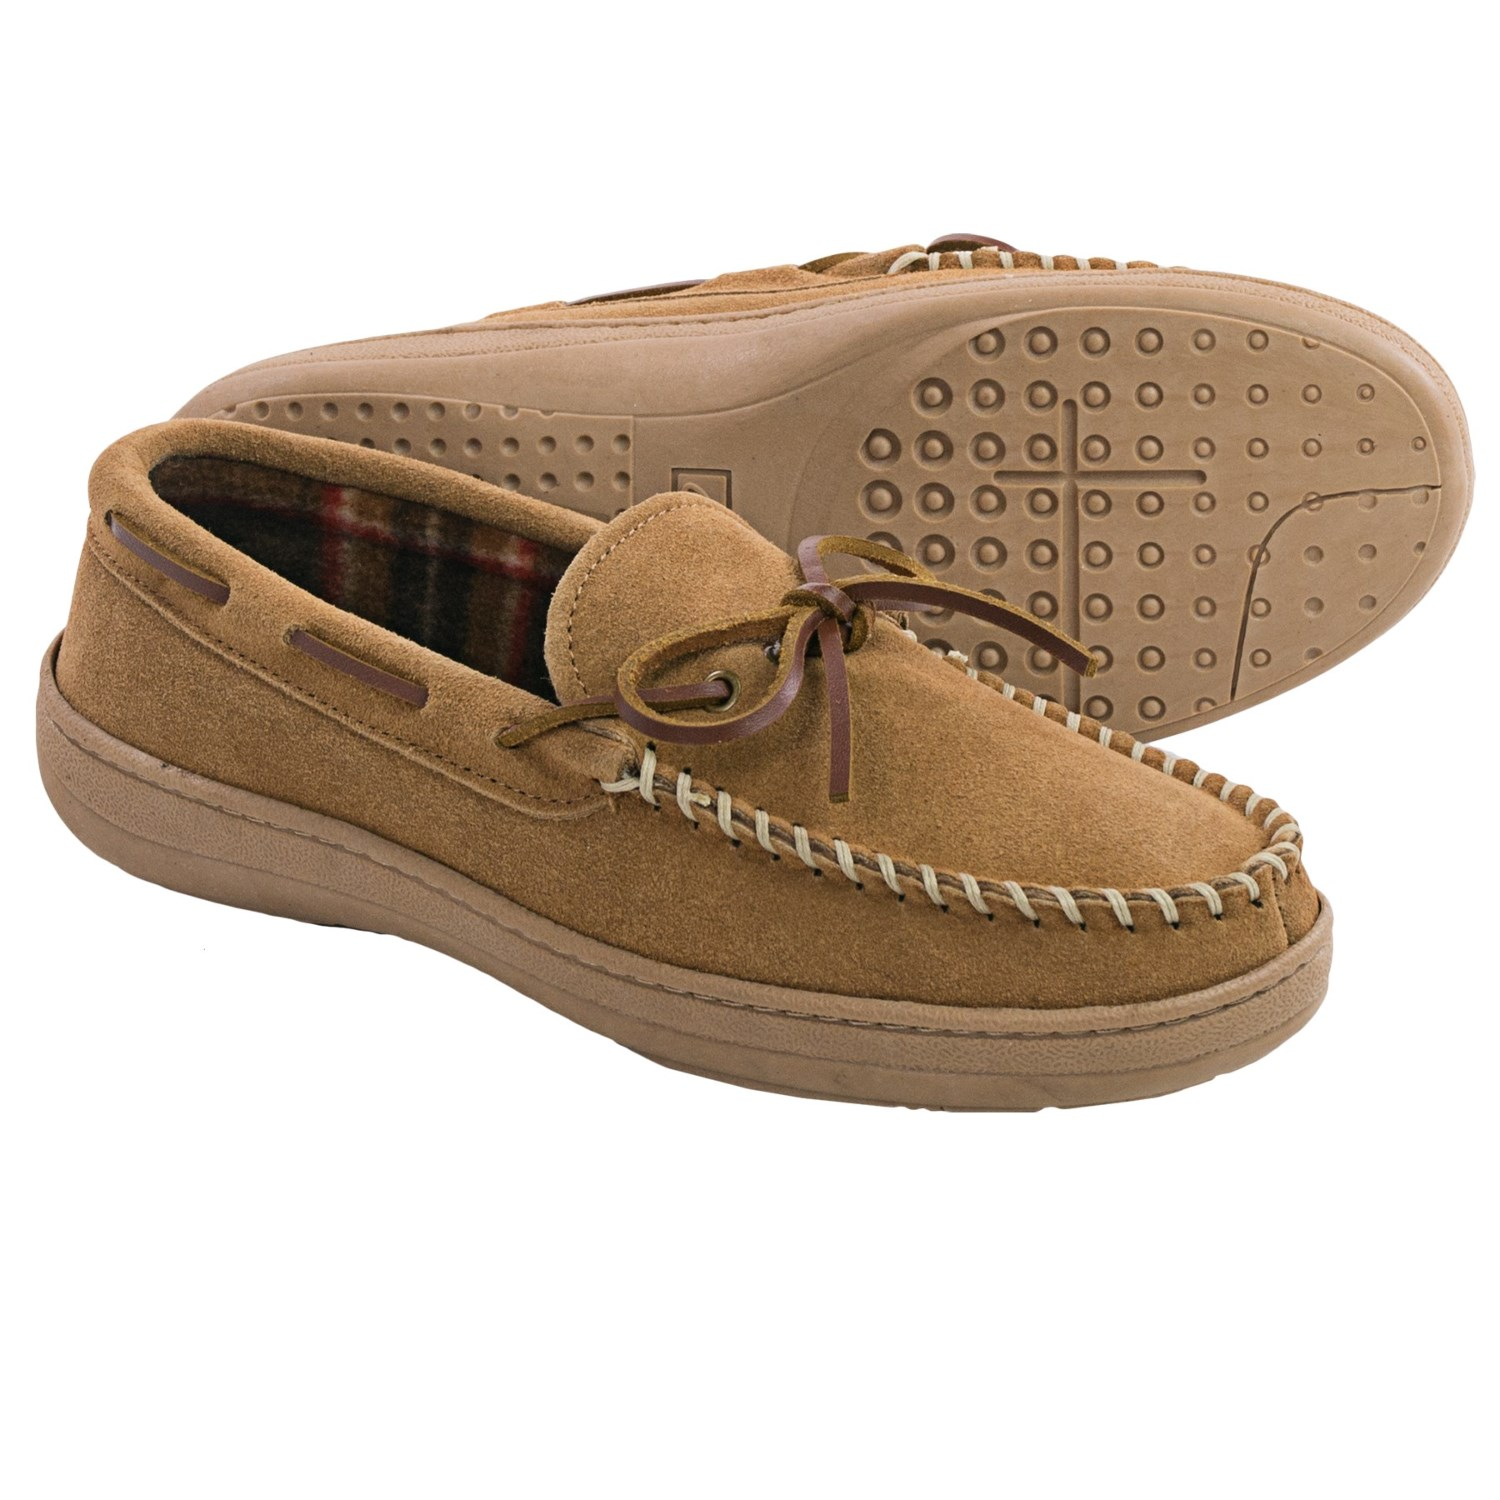 moccasin chat Find the best men's wicked good moccasins at llbean our high quality men's slippers are thoughtfully designed and built to last season after season.